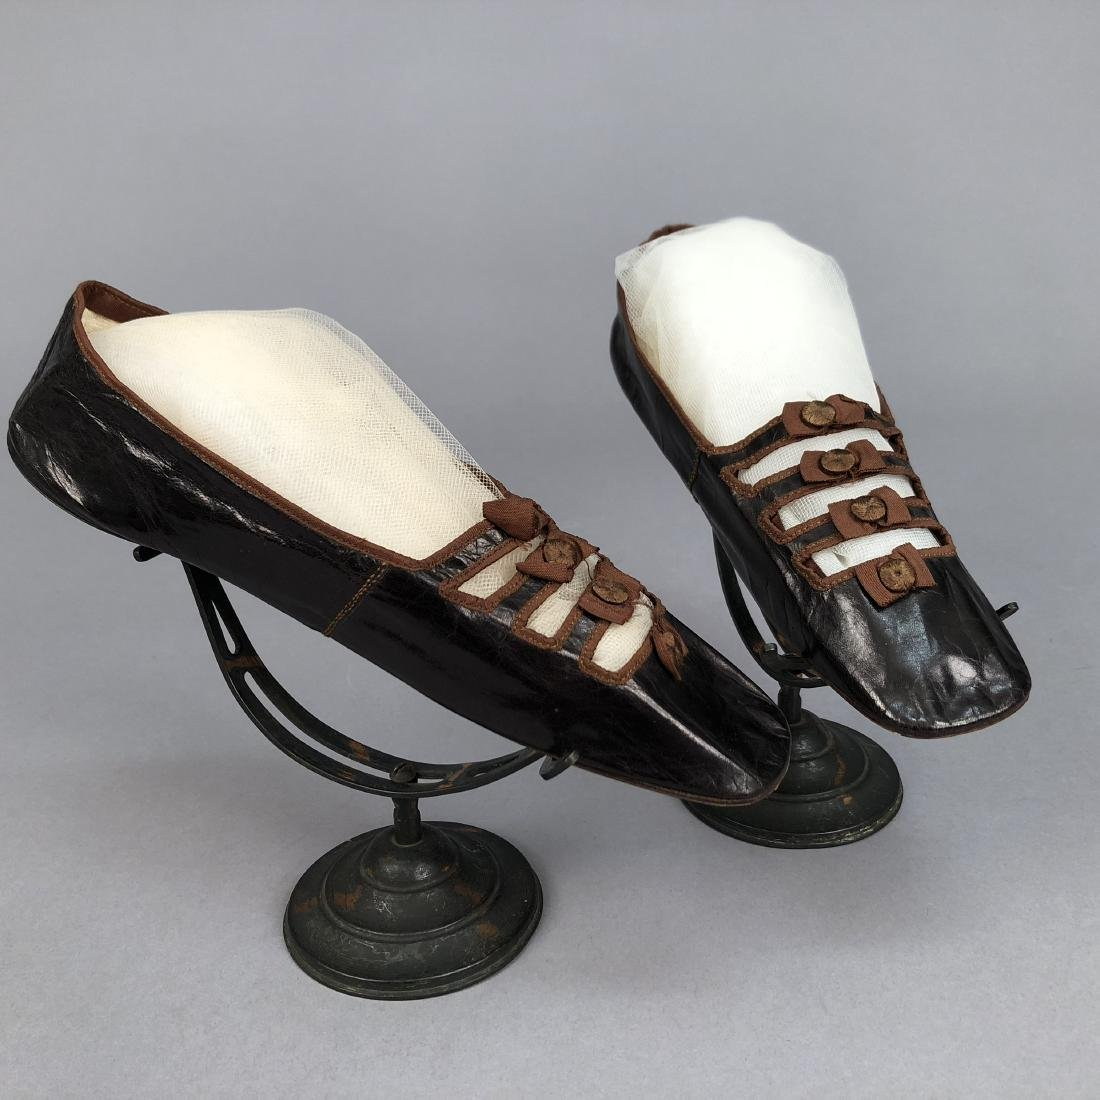 KID SHOES with BARETTE VAMP, 1840s - 1850s - 2